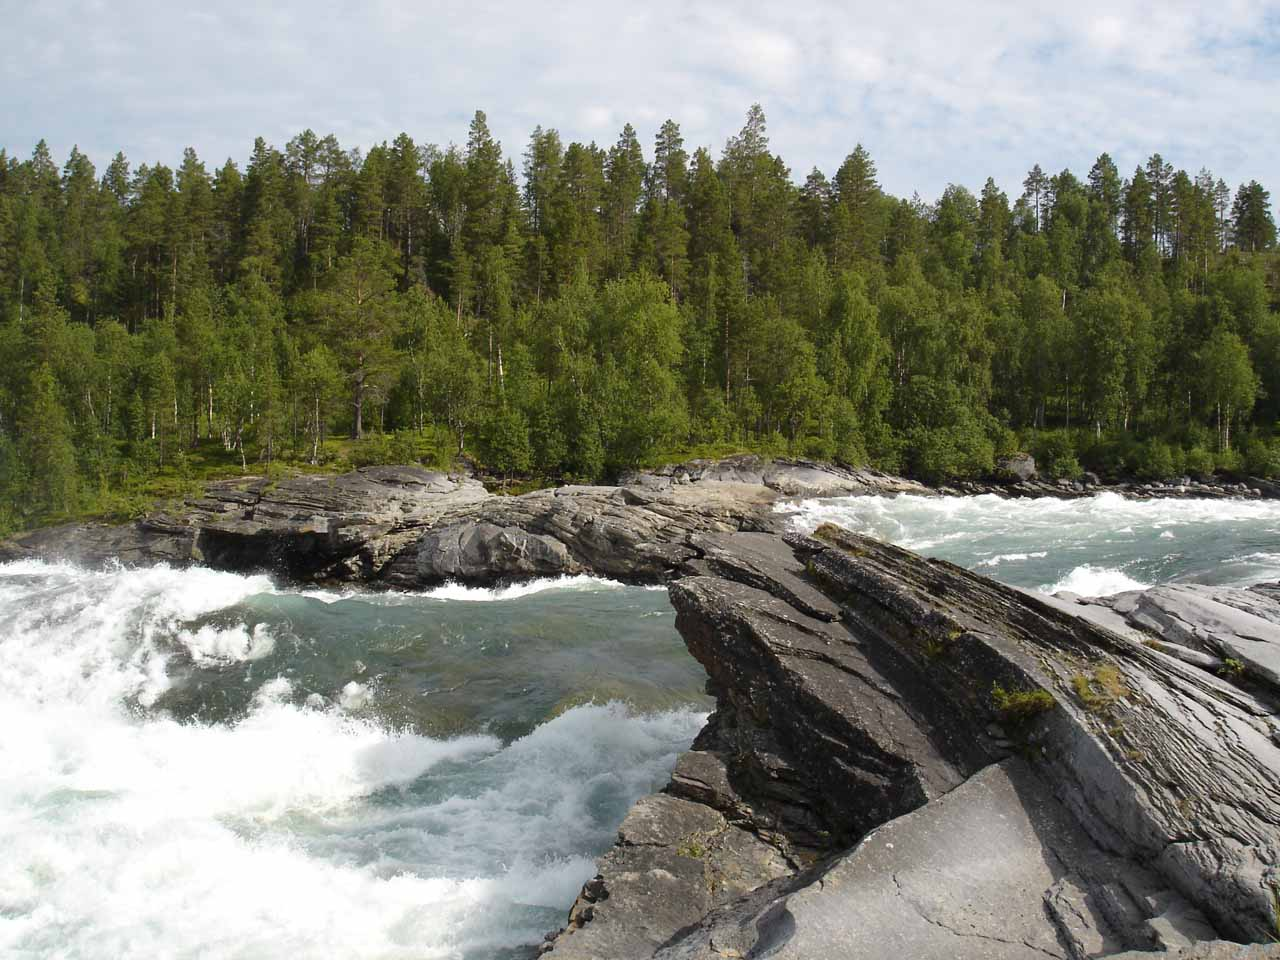 Jagged rocks flanking the top of the rapids of Målselvfossen